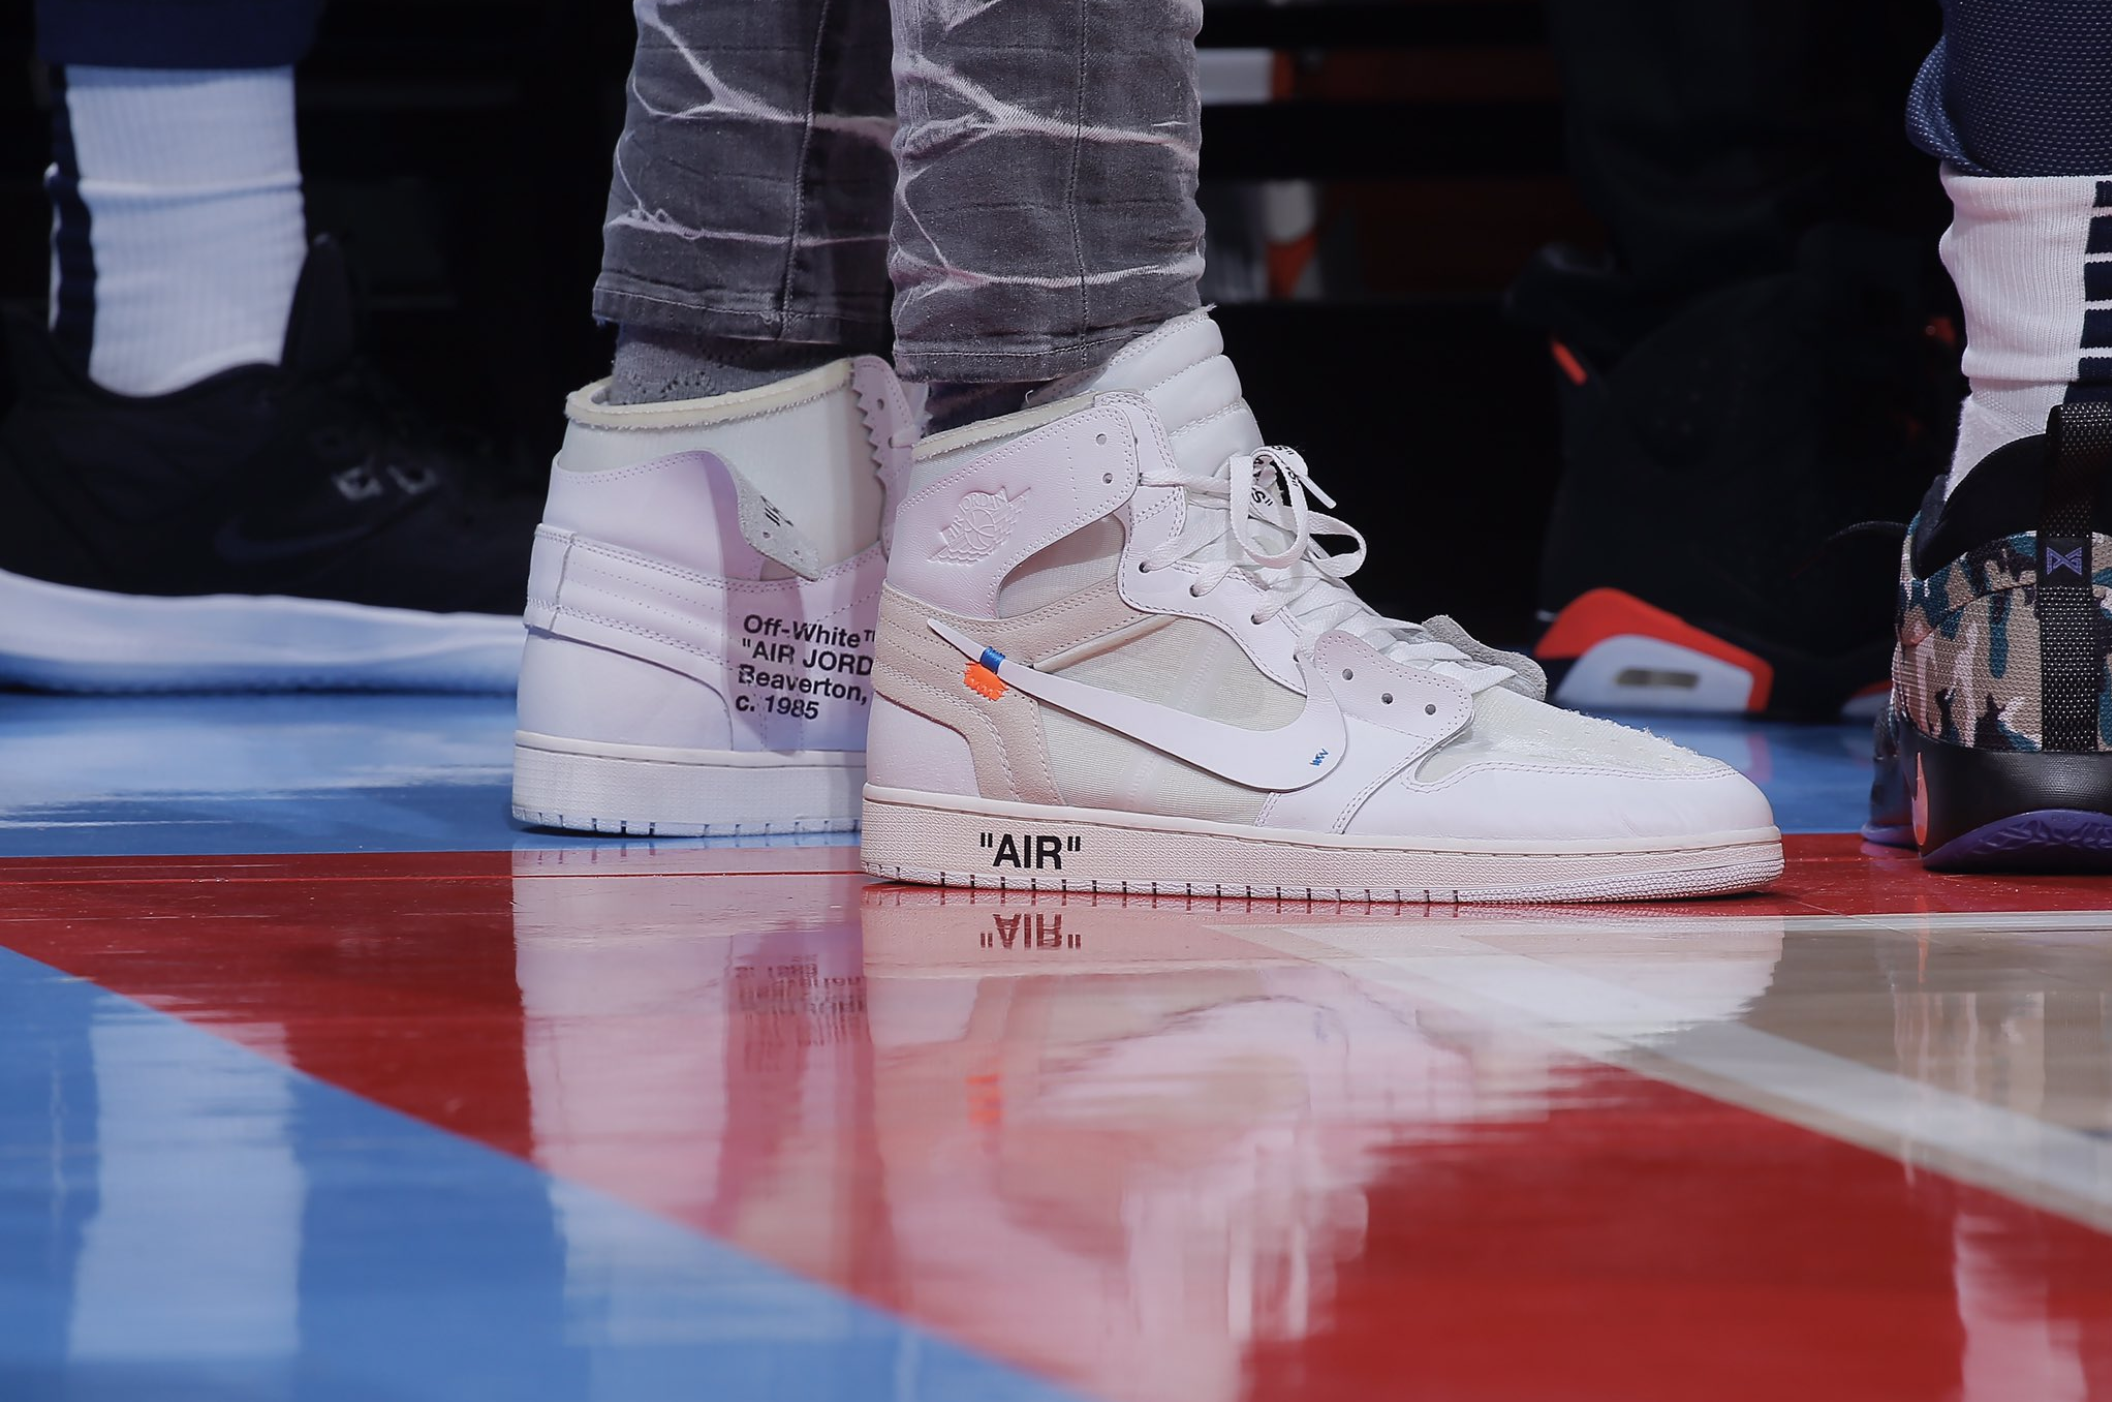 Anthony Davis on the sidelines with the Off White Air Jordan 1 Europe Exclusive -